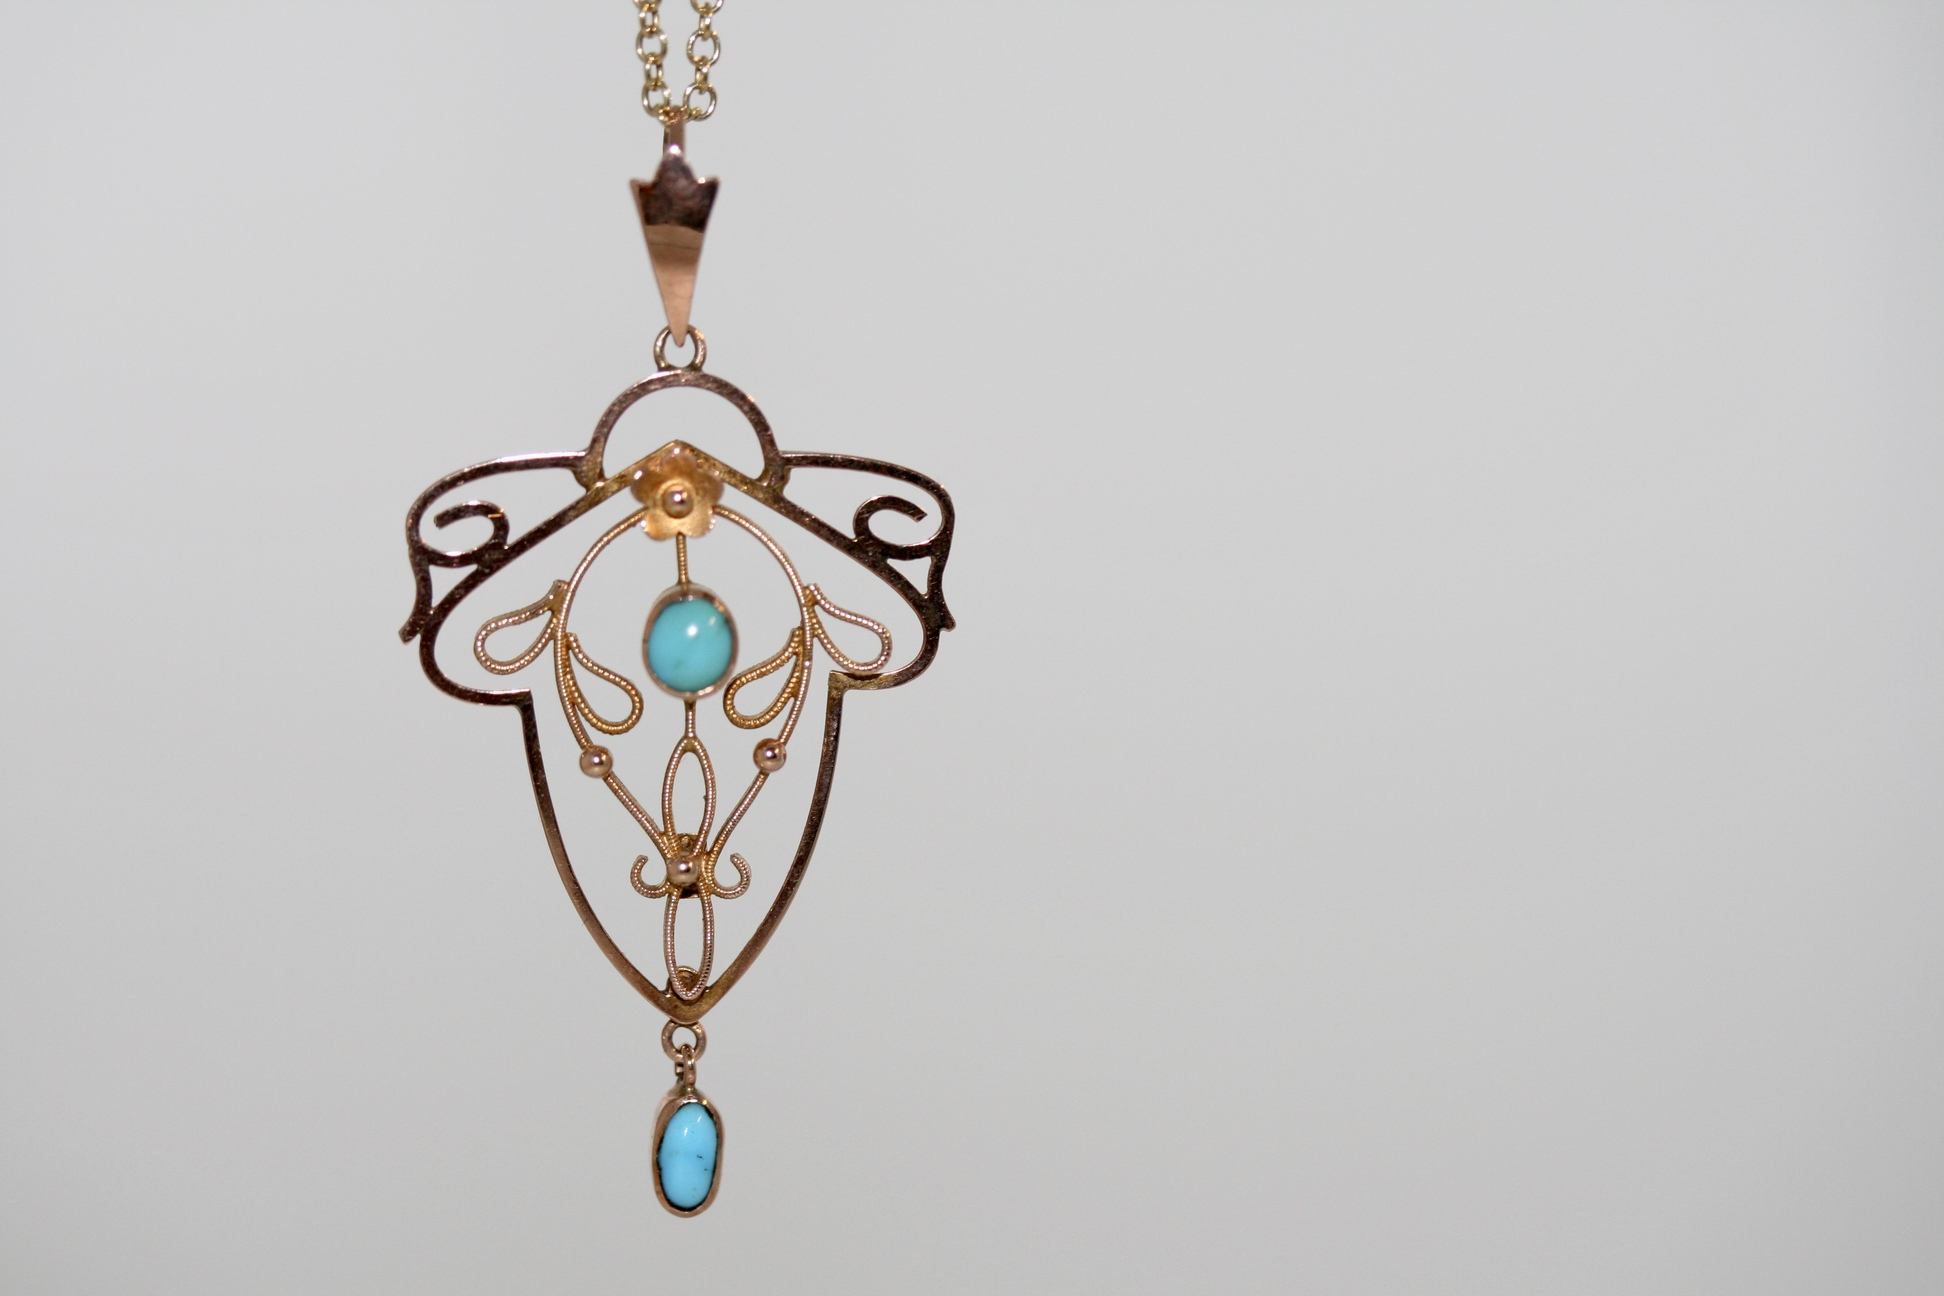 An Art Nouveau 9ct Gold And Turquoise Pendant